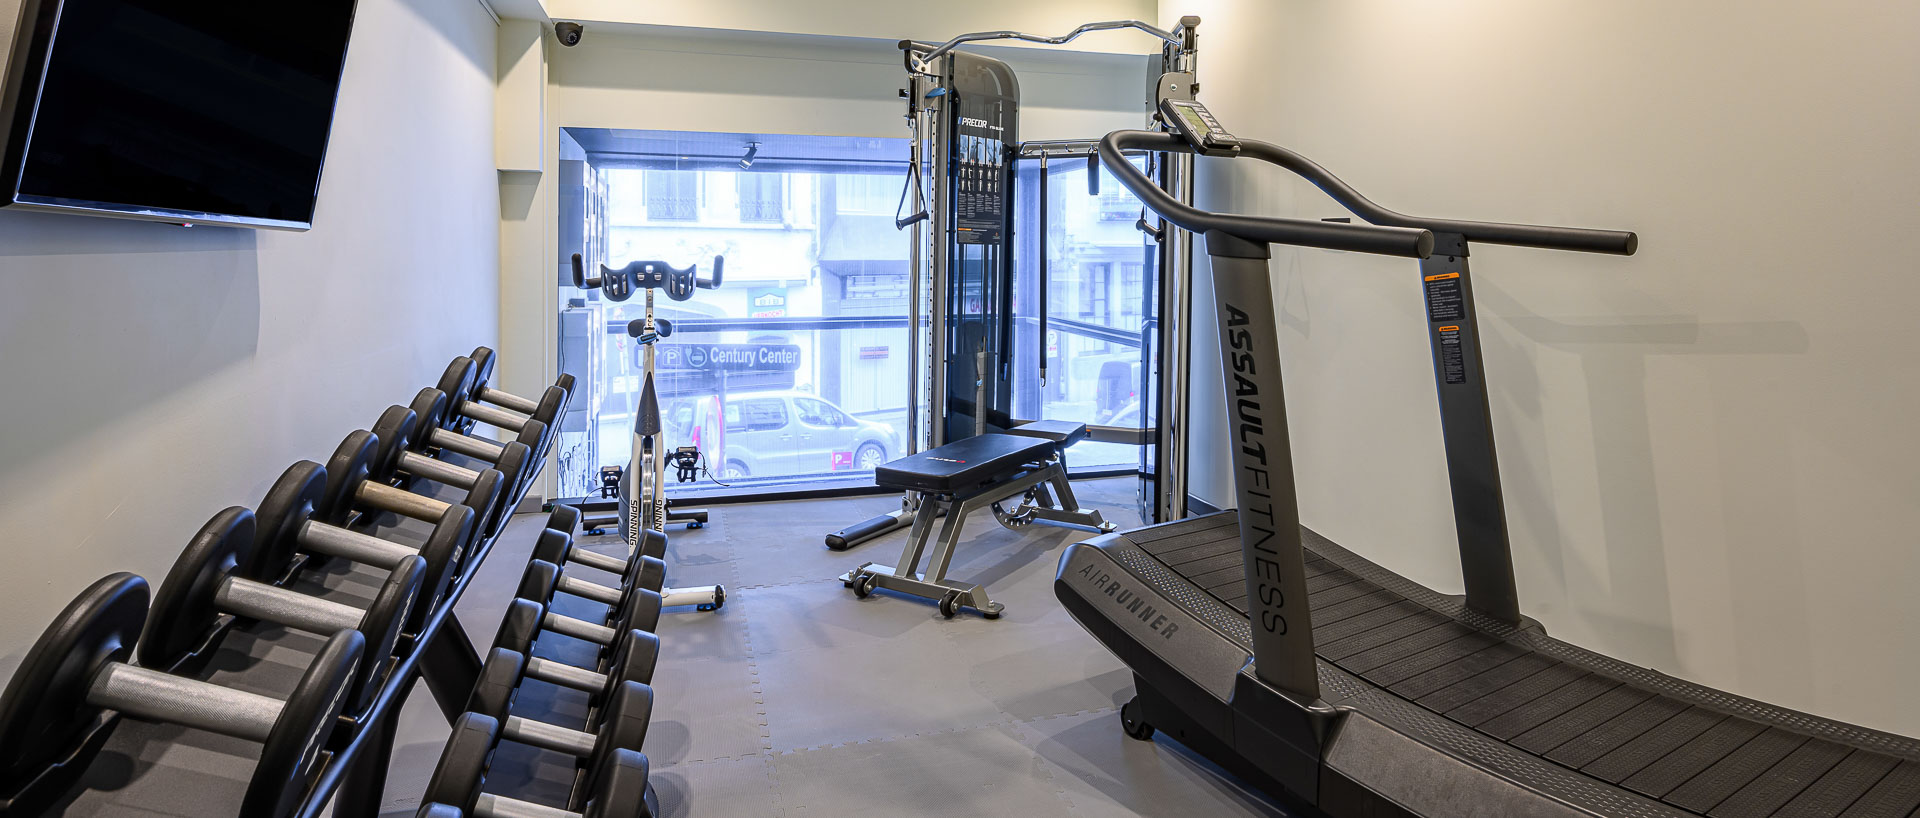 Fitness room at PREMIER SUITES PLUS Antwerp